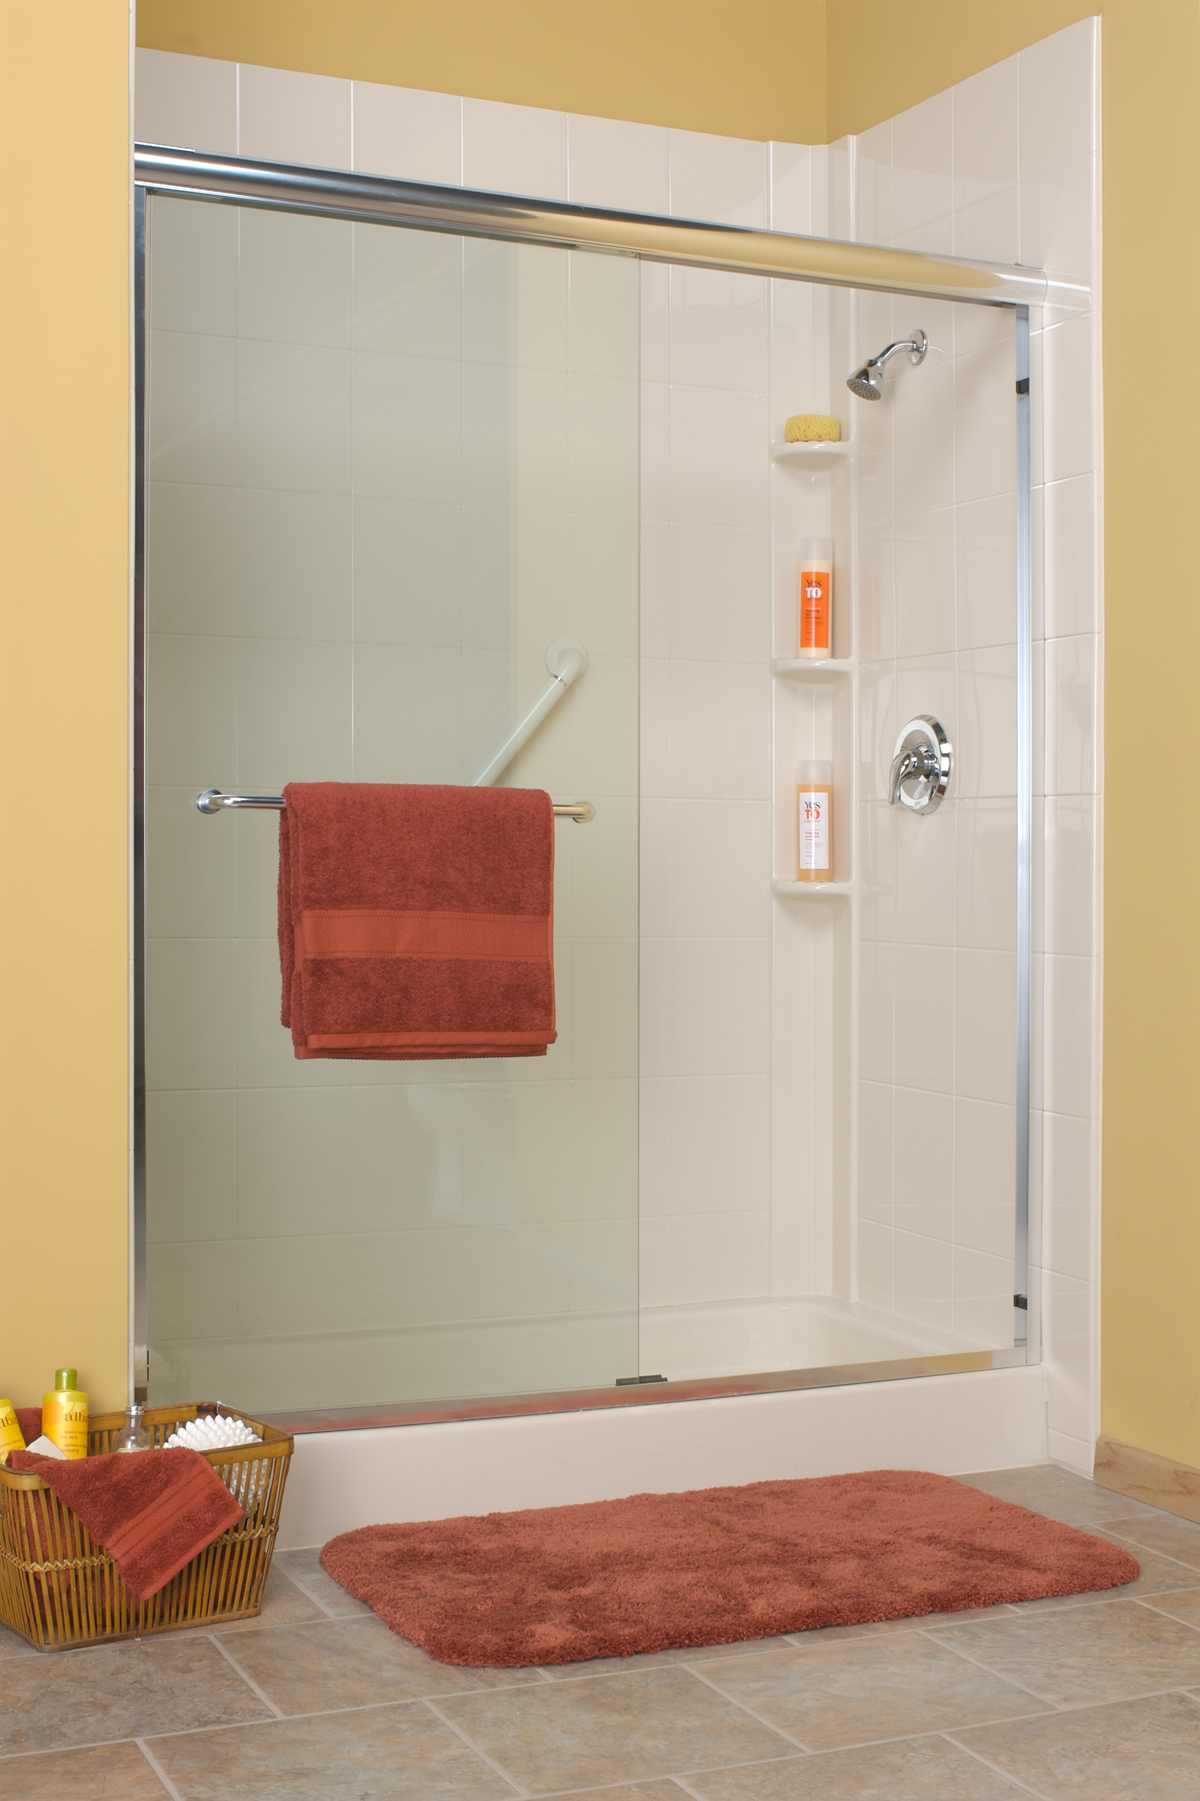 replace tub shower san antonio tx austin. Black Bedroom Furniture Sets. Home Design Ideas